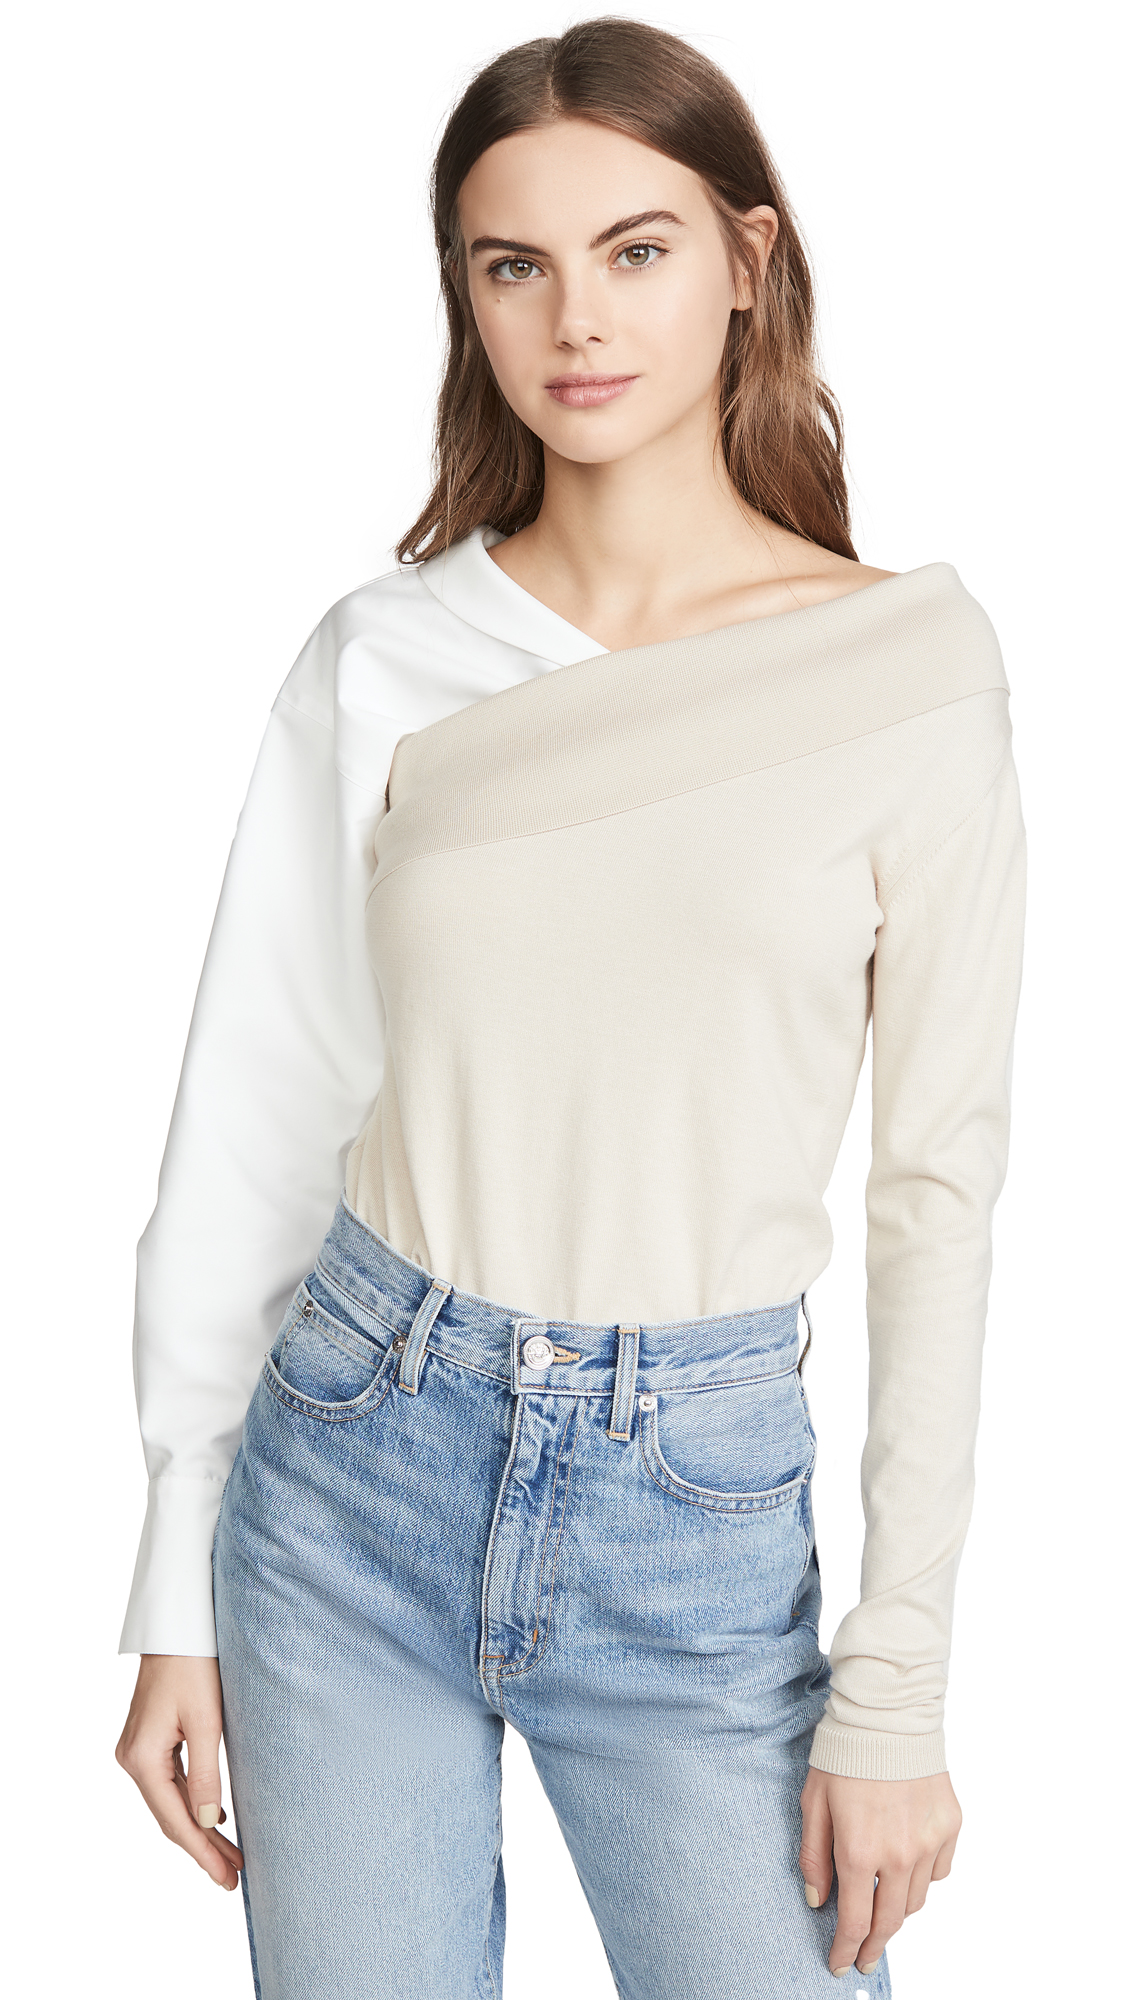 Photo of Adeam Two Way Knit Top - shop Adeam Tops, Blouses online